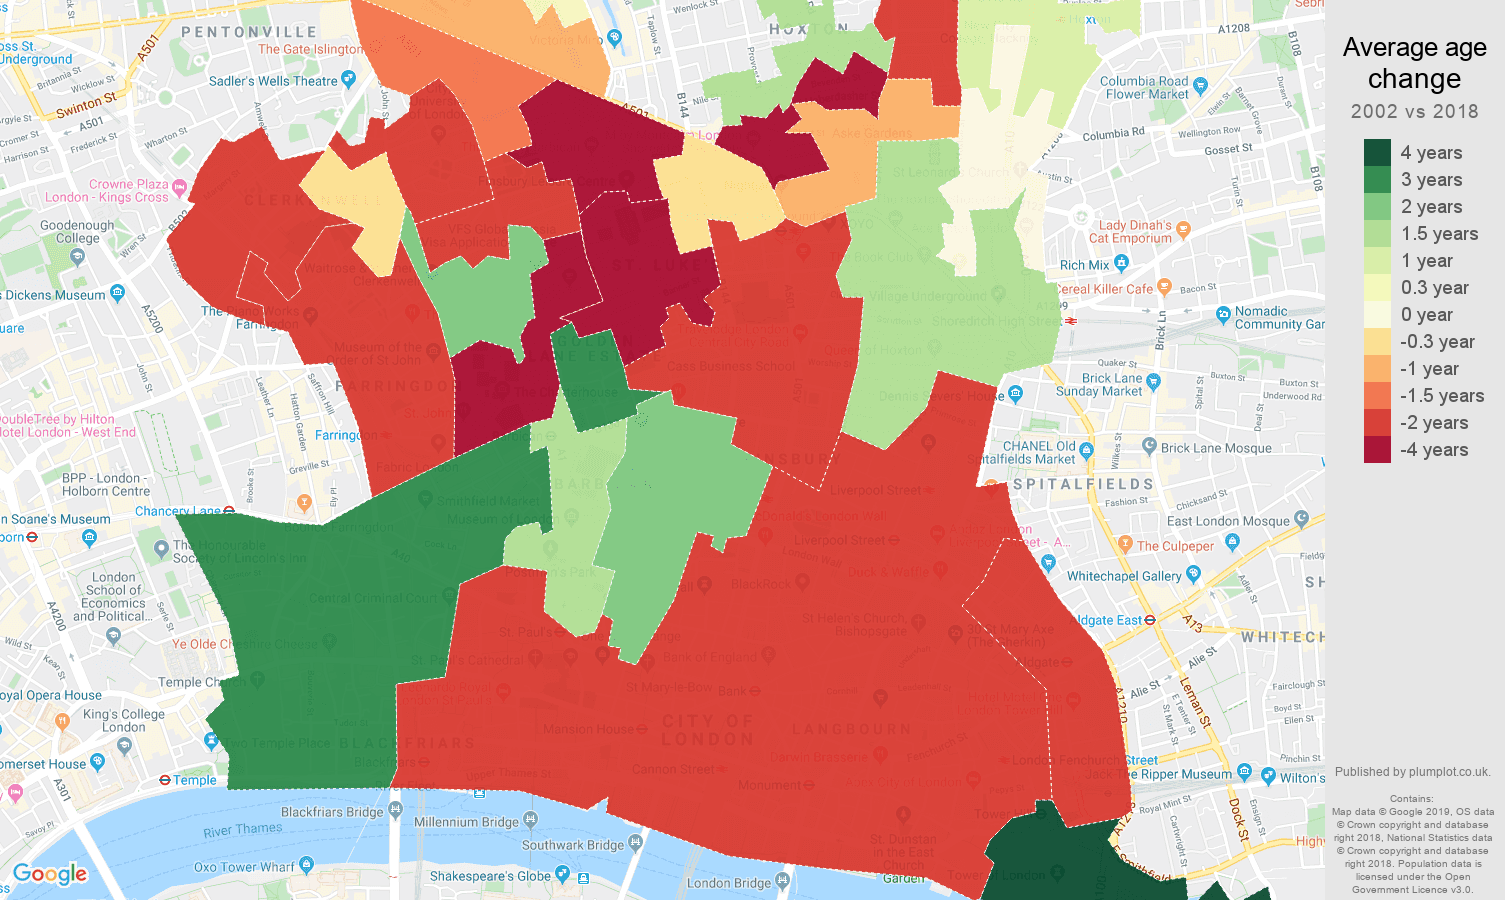 East Central London average age change map